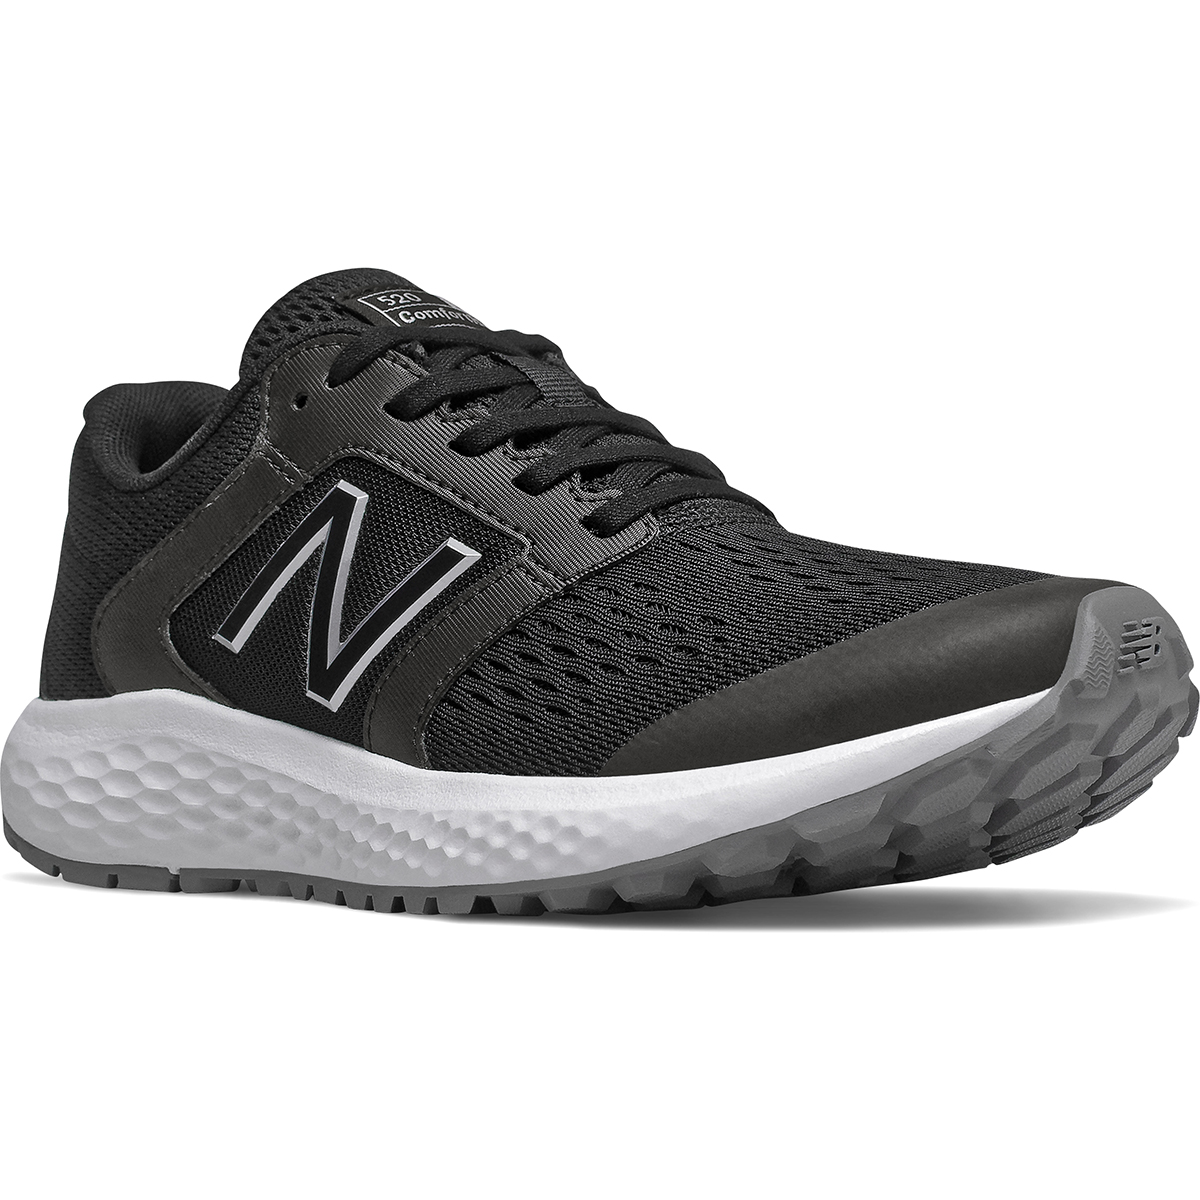 New Balance Women's 520 V5 Running Shoe - Black, 8